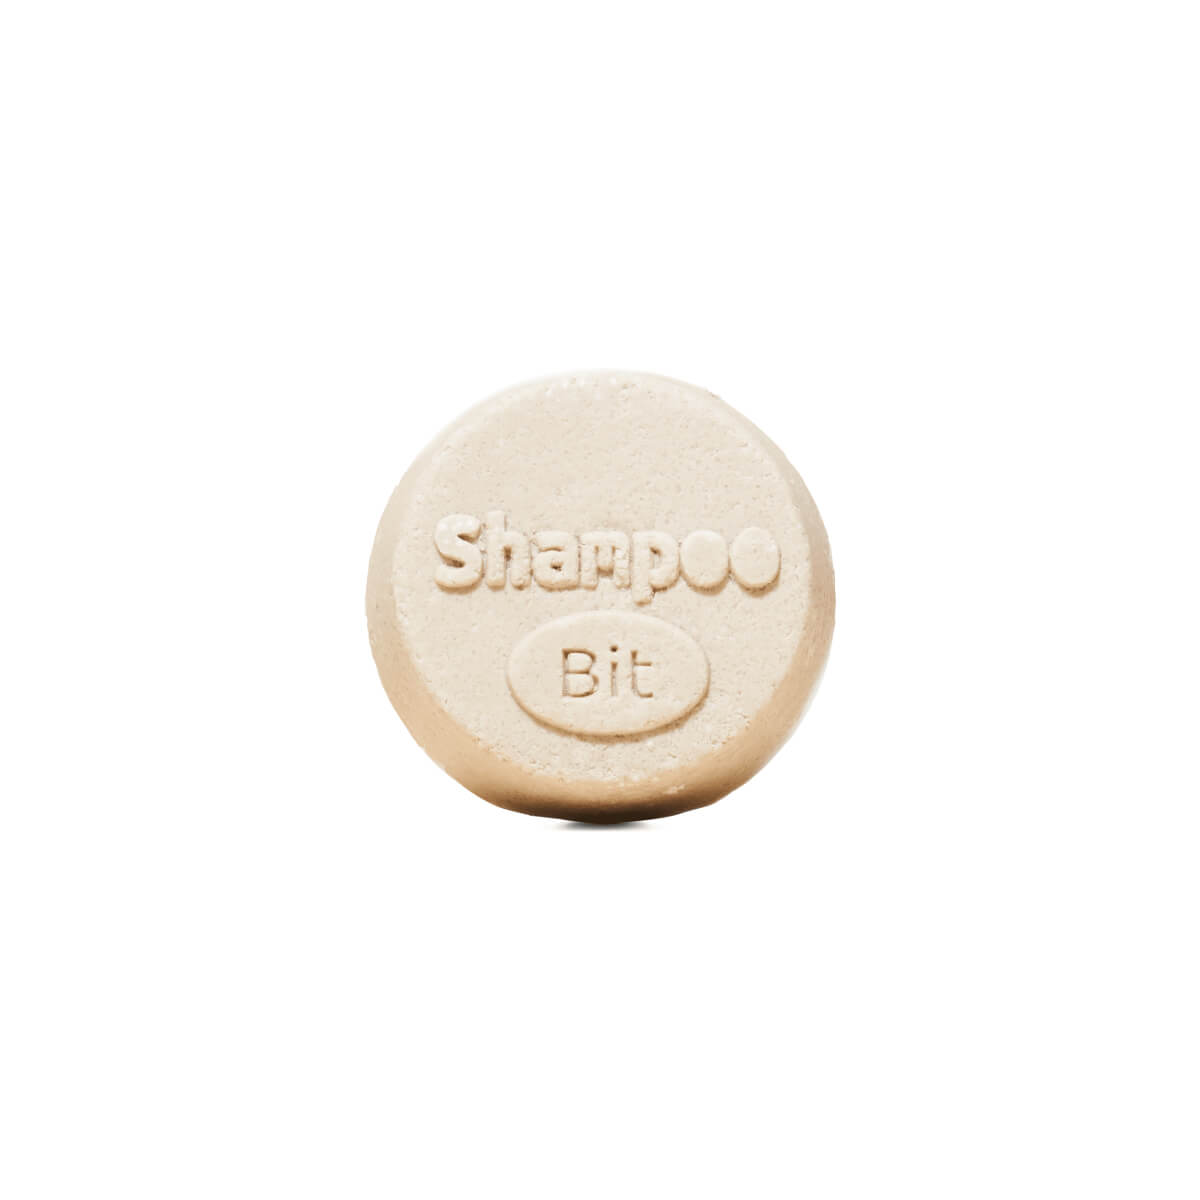 Solid Shampoo and Conditioner - ShampooBit Kur